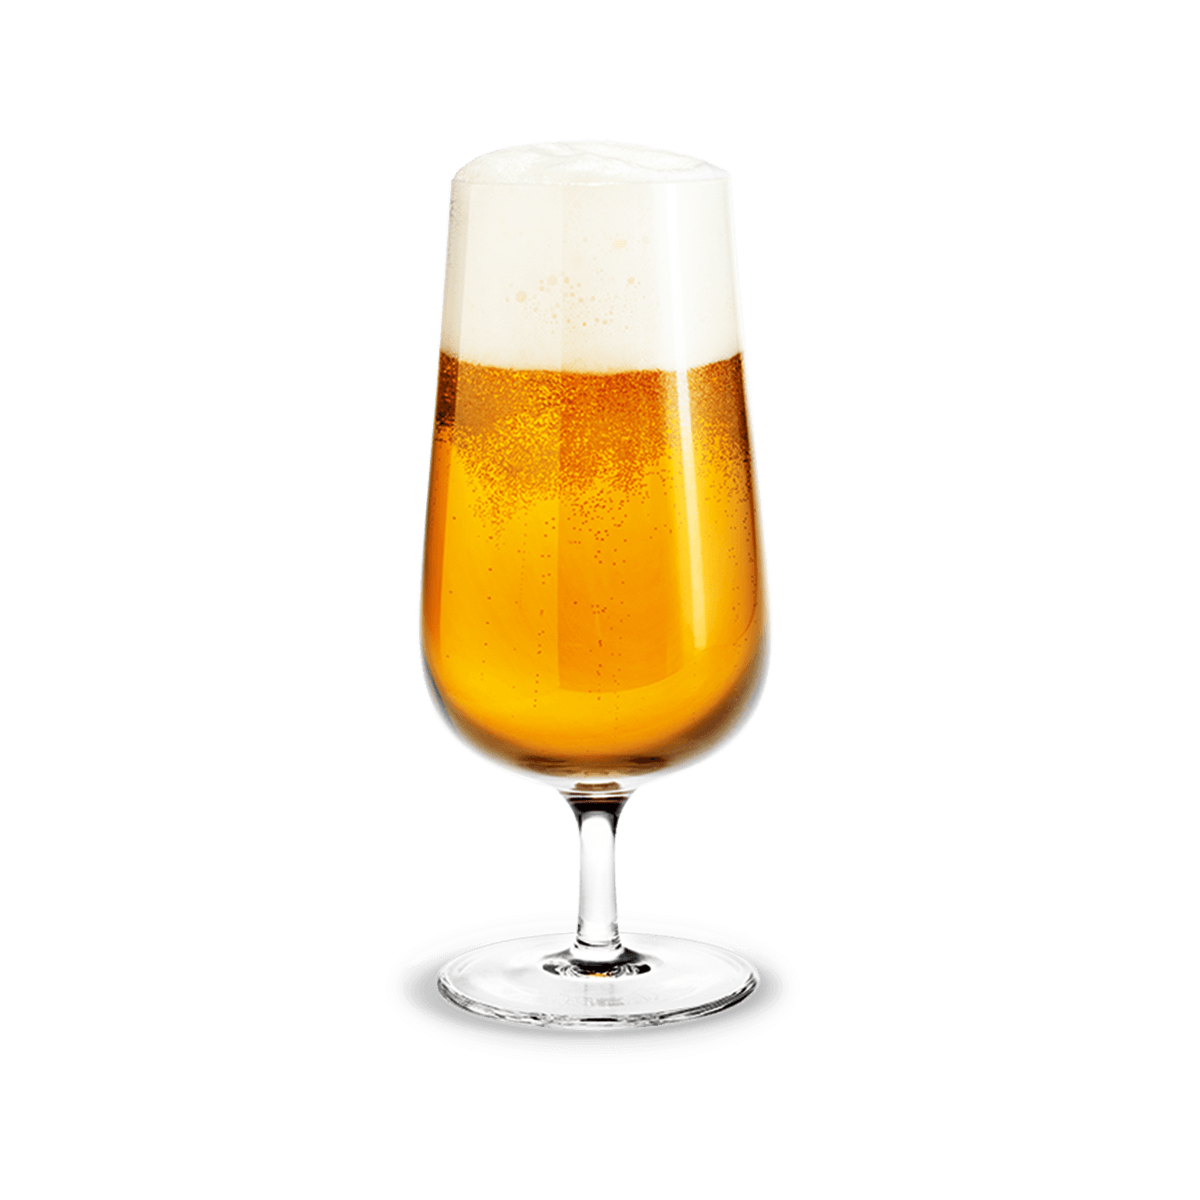 how to clean beer glasses